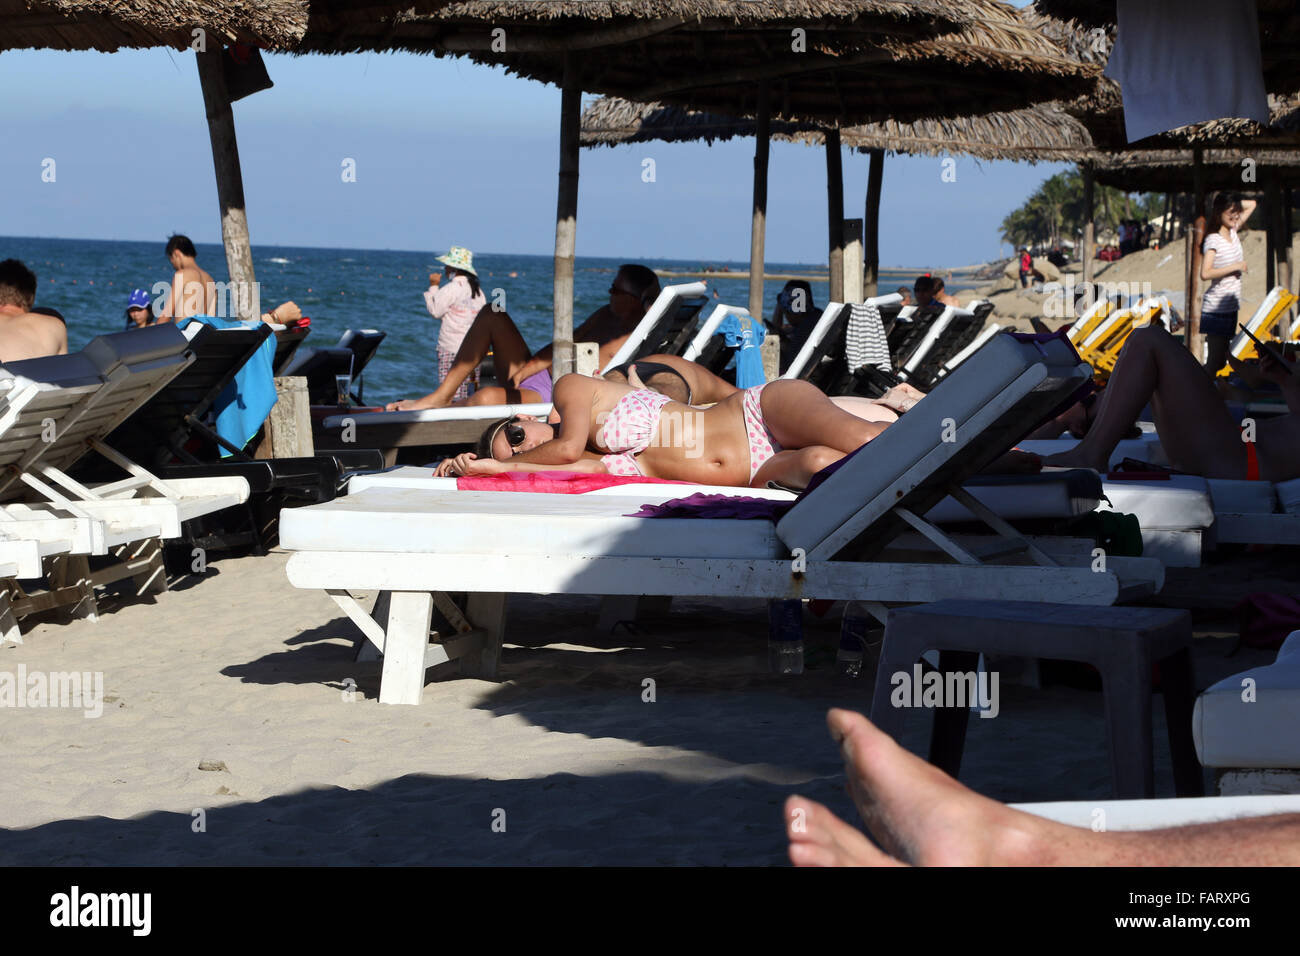 sleeping on the sun lounger bed beach snooze - Stock Image